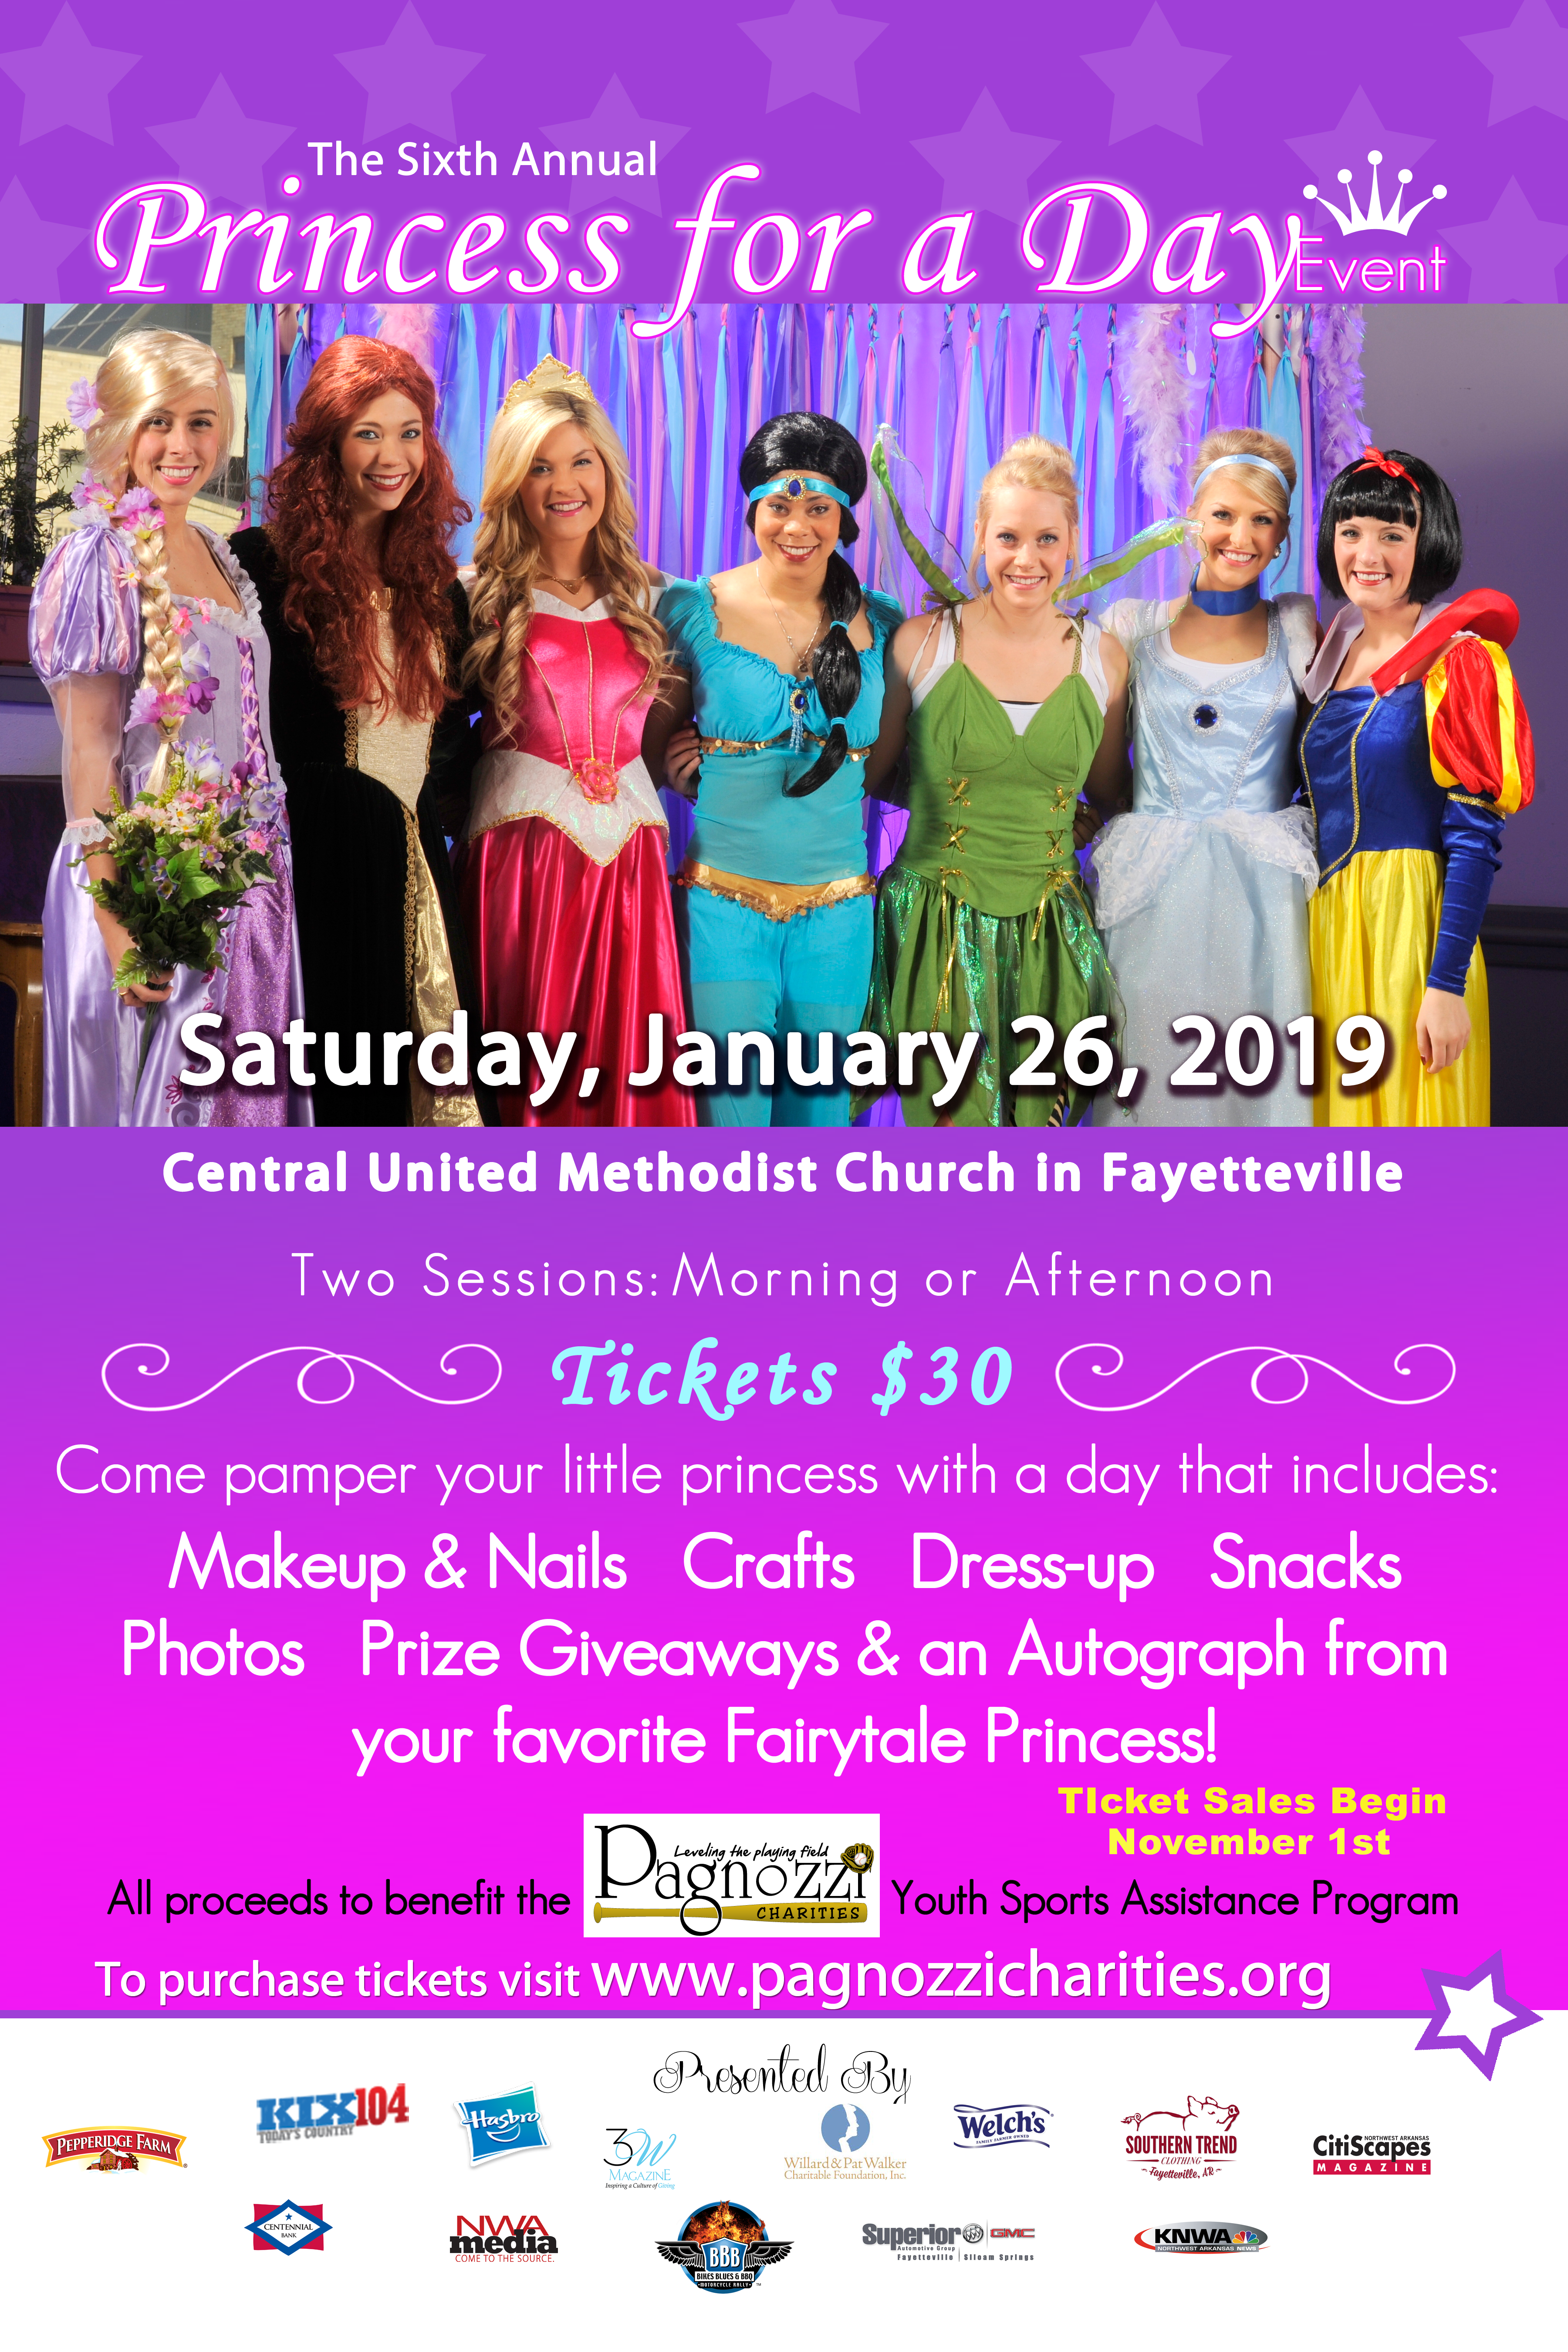 Register starting November 1st for the 6th Annual Princess for a Day Event